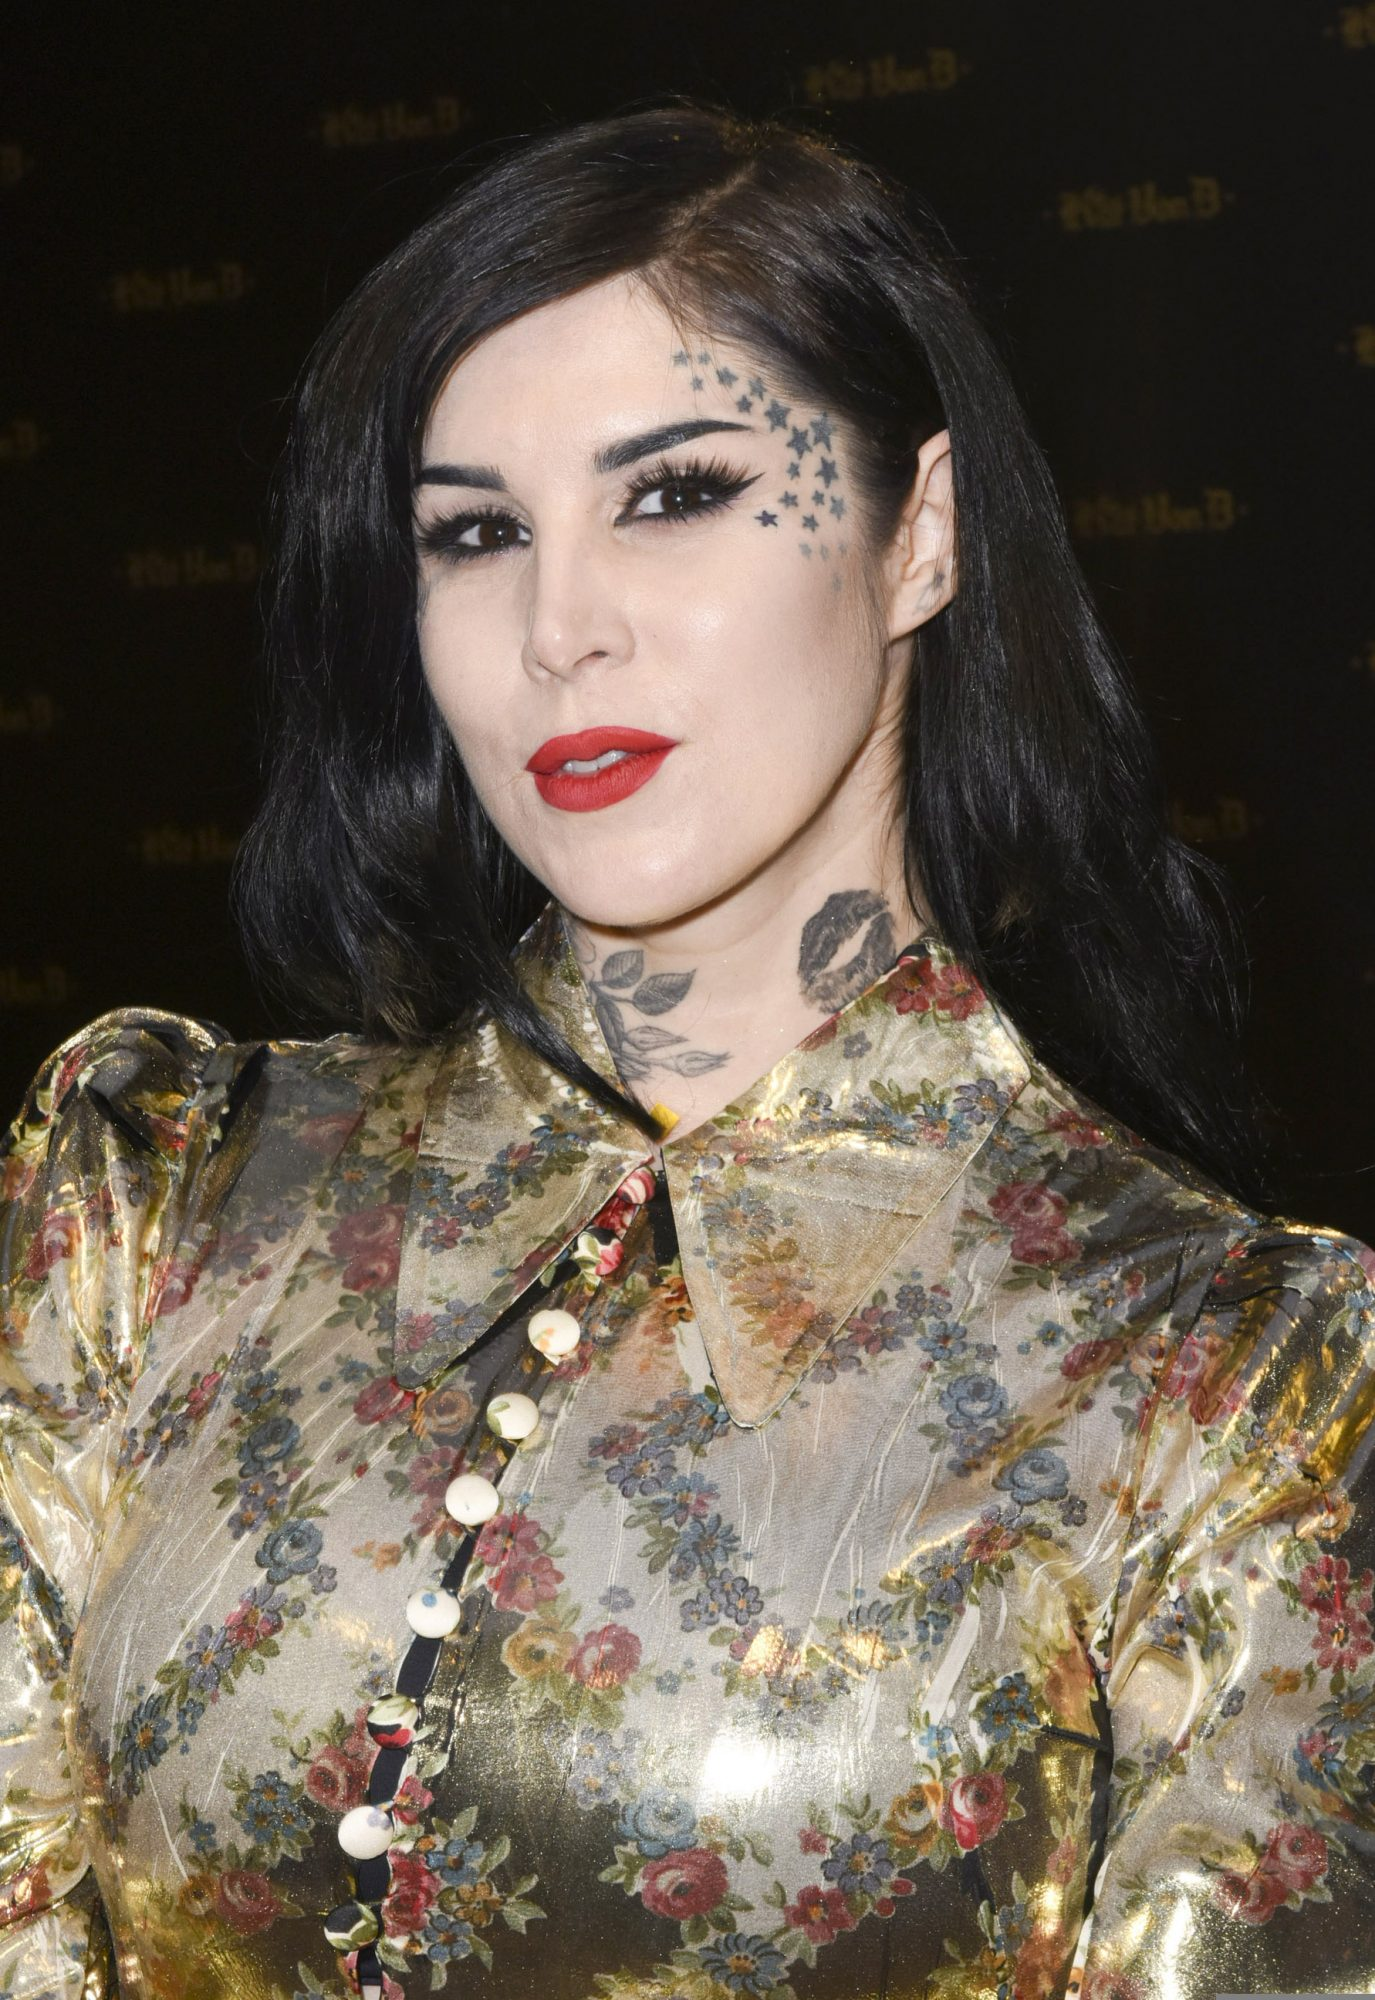 Pregnant Kat Von D Plans to Not Vaccinate Her Son